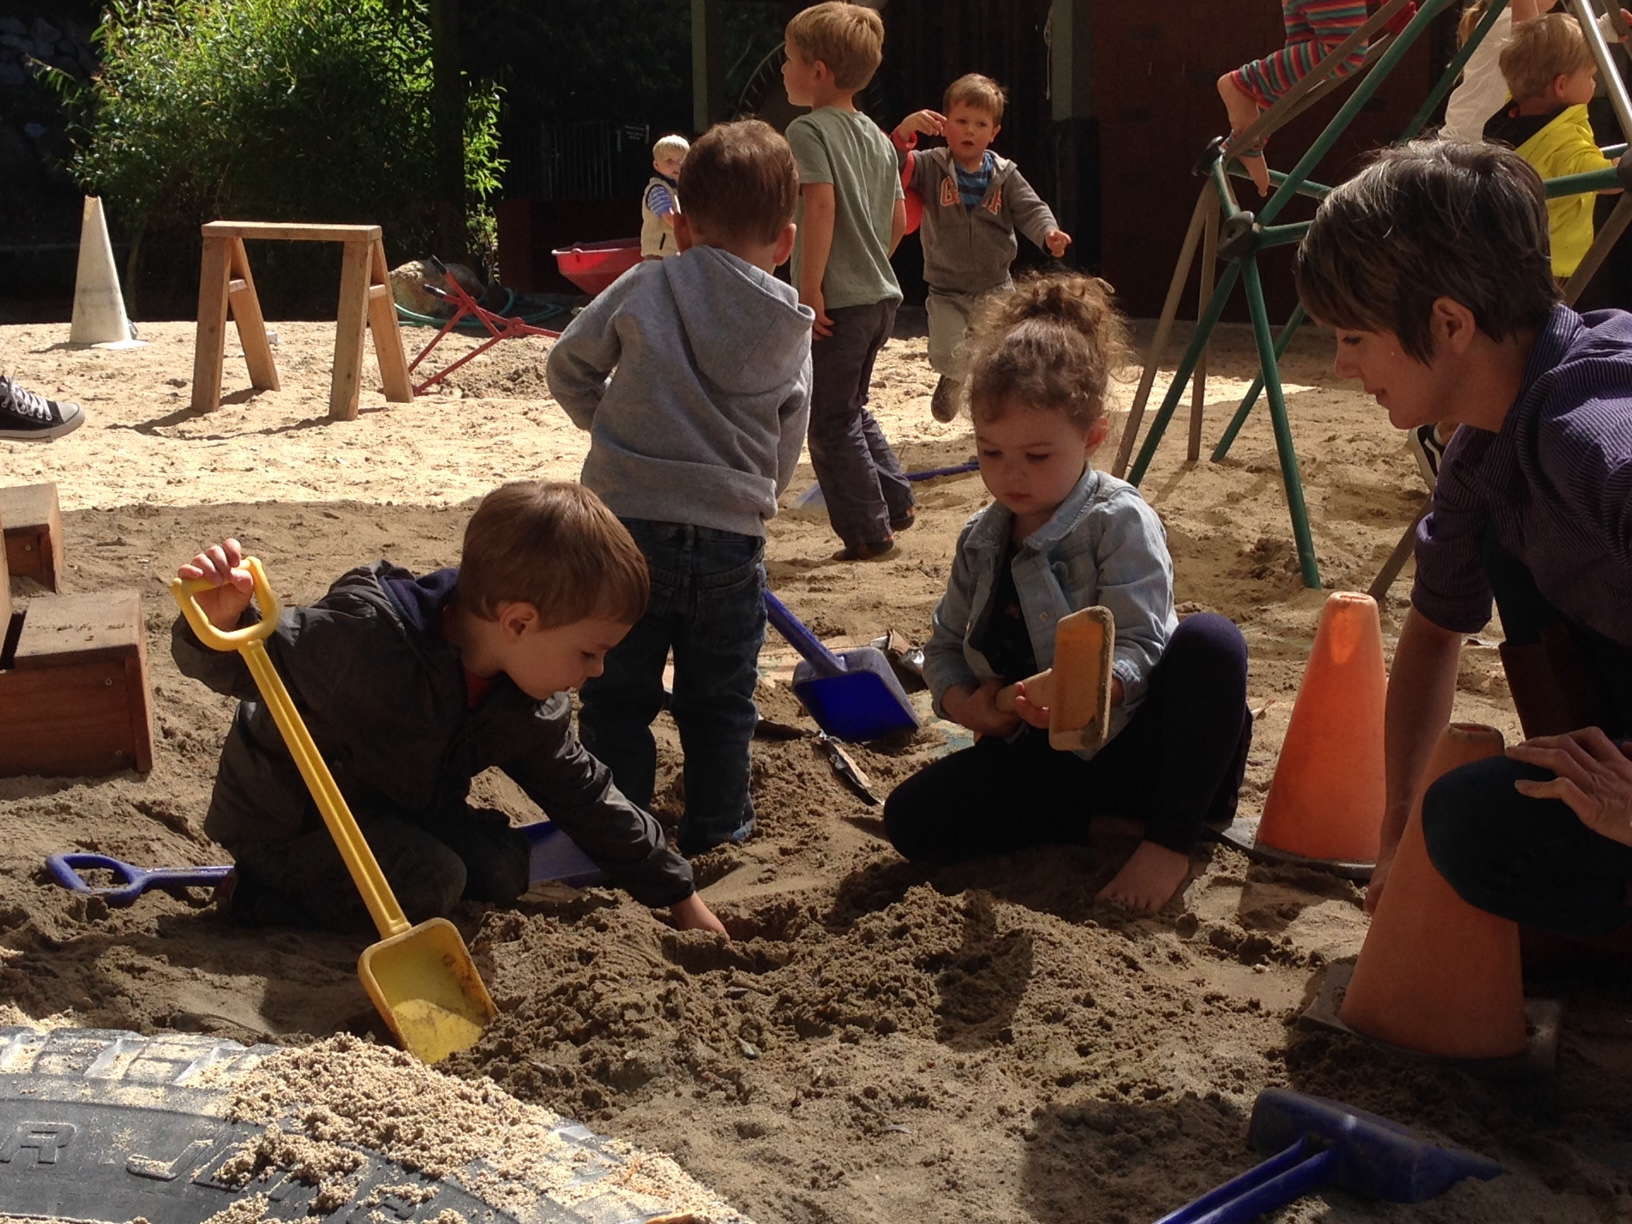 endless fun digging in the sand!